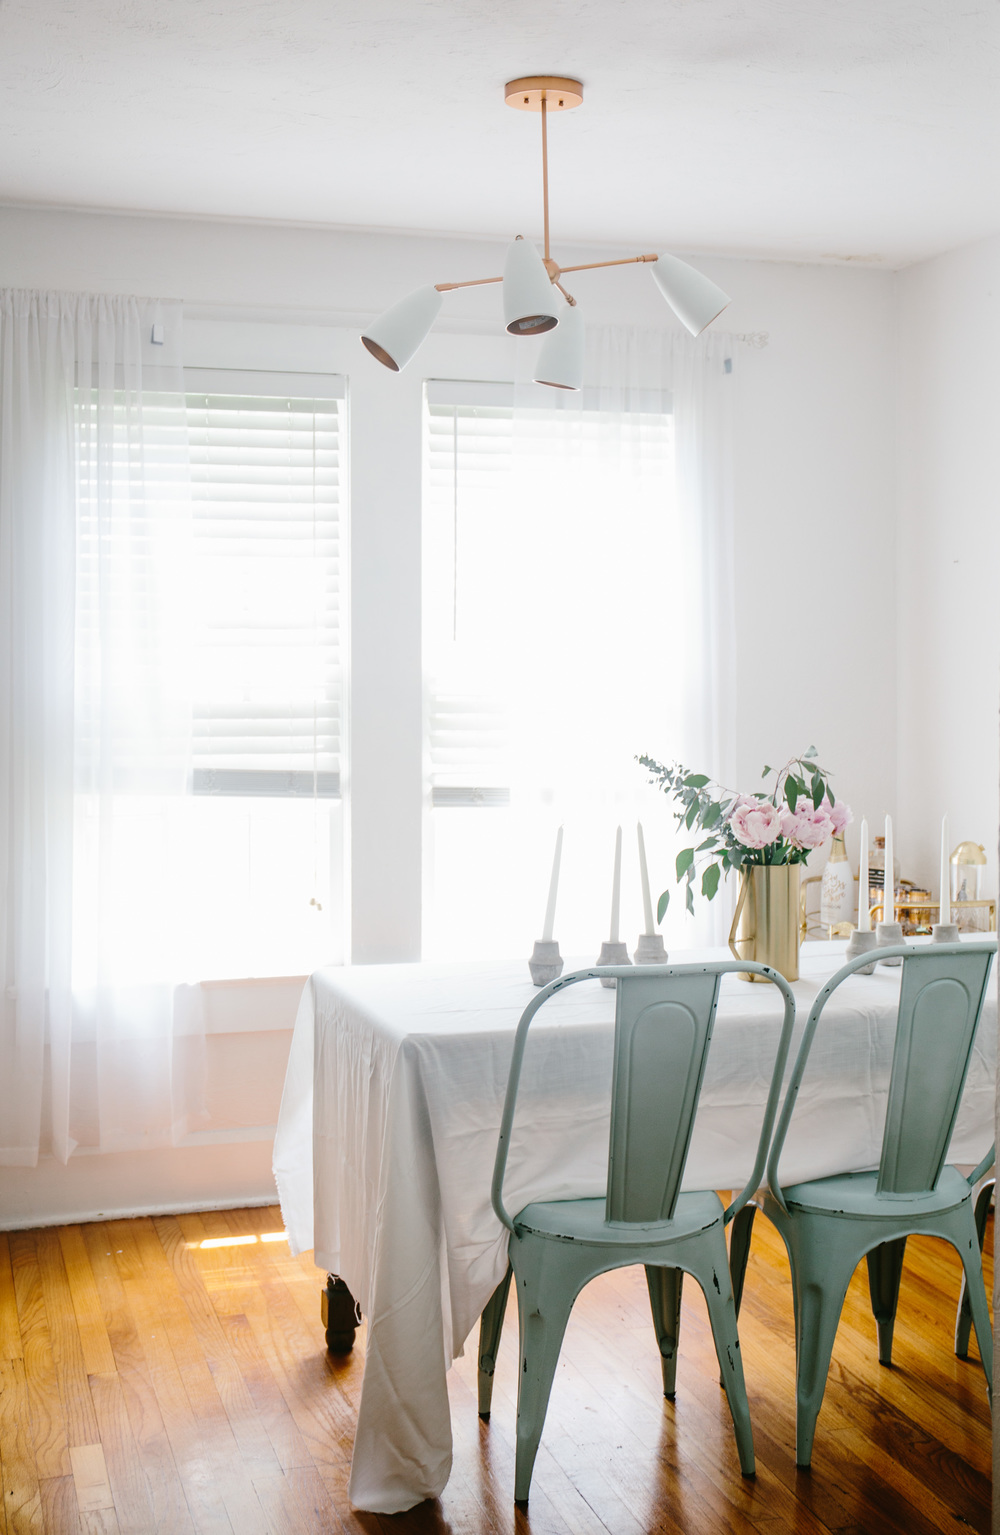 Dining room inspiration | Florida bungalow styling | Shannon Kirsten Home Tour | The School of Styling - http://www.theschoolofstyling.com